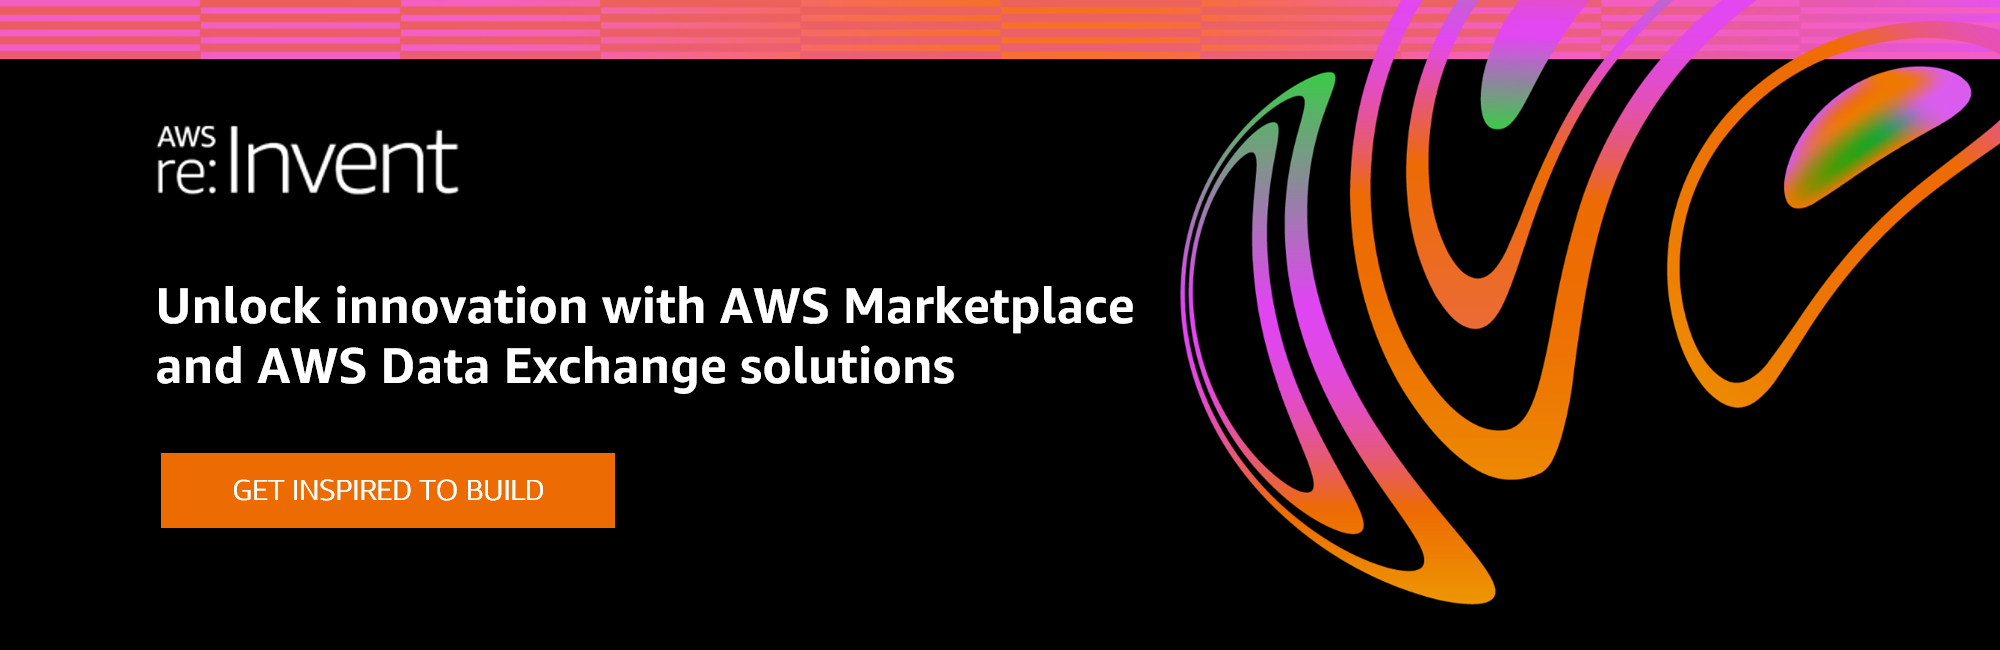 Unlock innovation with AWS Marketplace and AWS Data Exchange solutions.